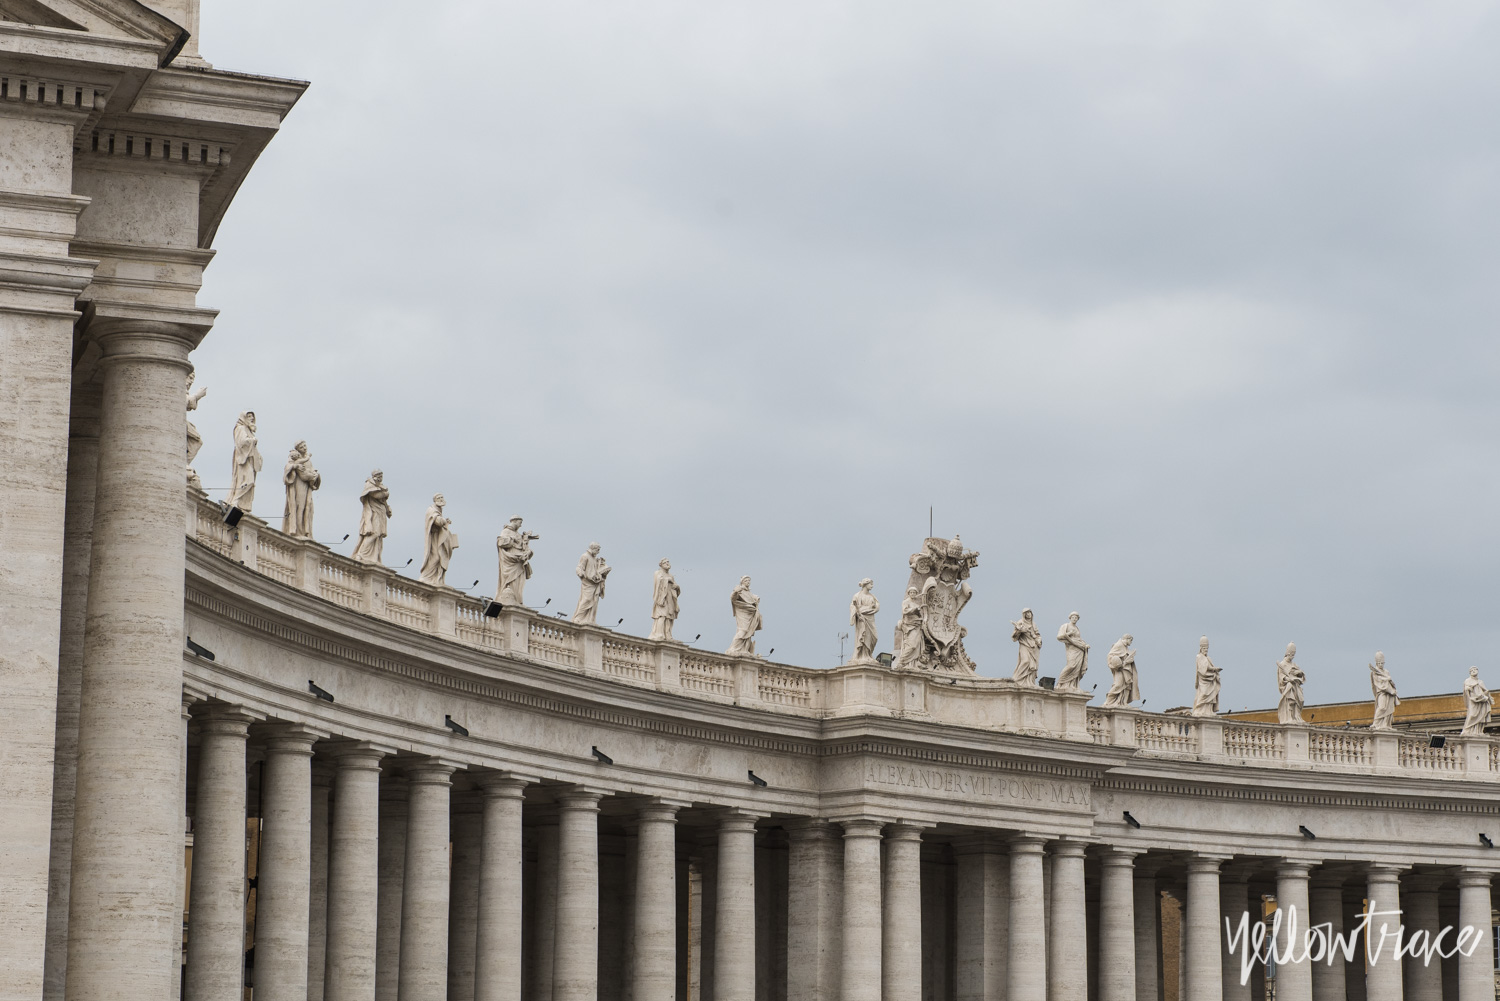 St. Peter's Square, Vatican City, Photo © Nick Hughes | Yellowtrace